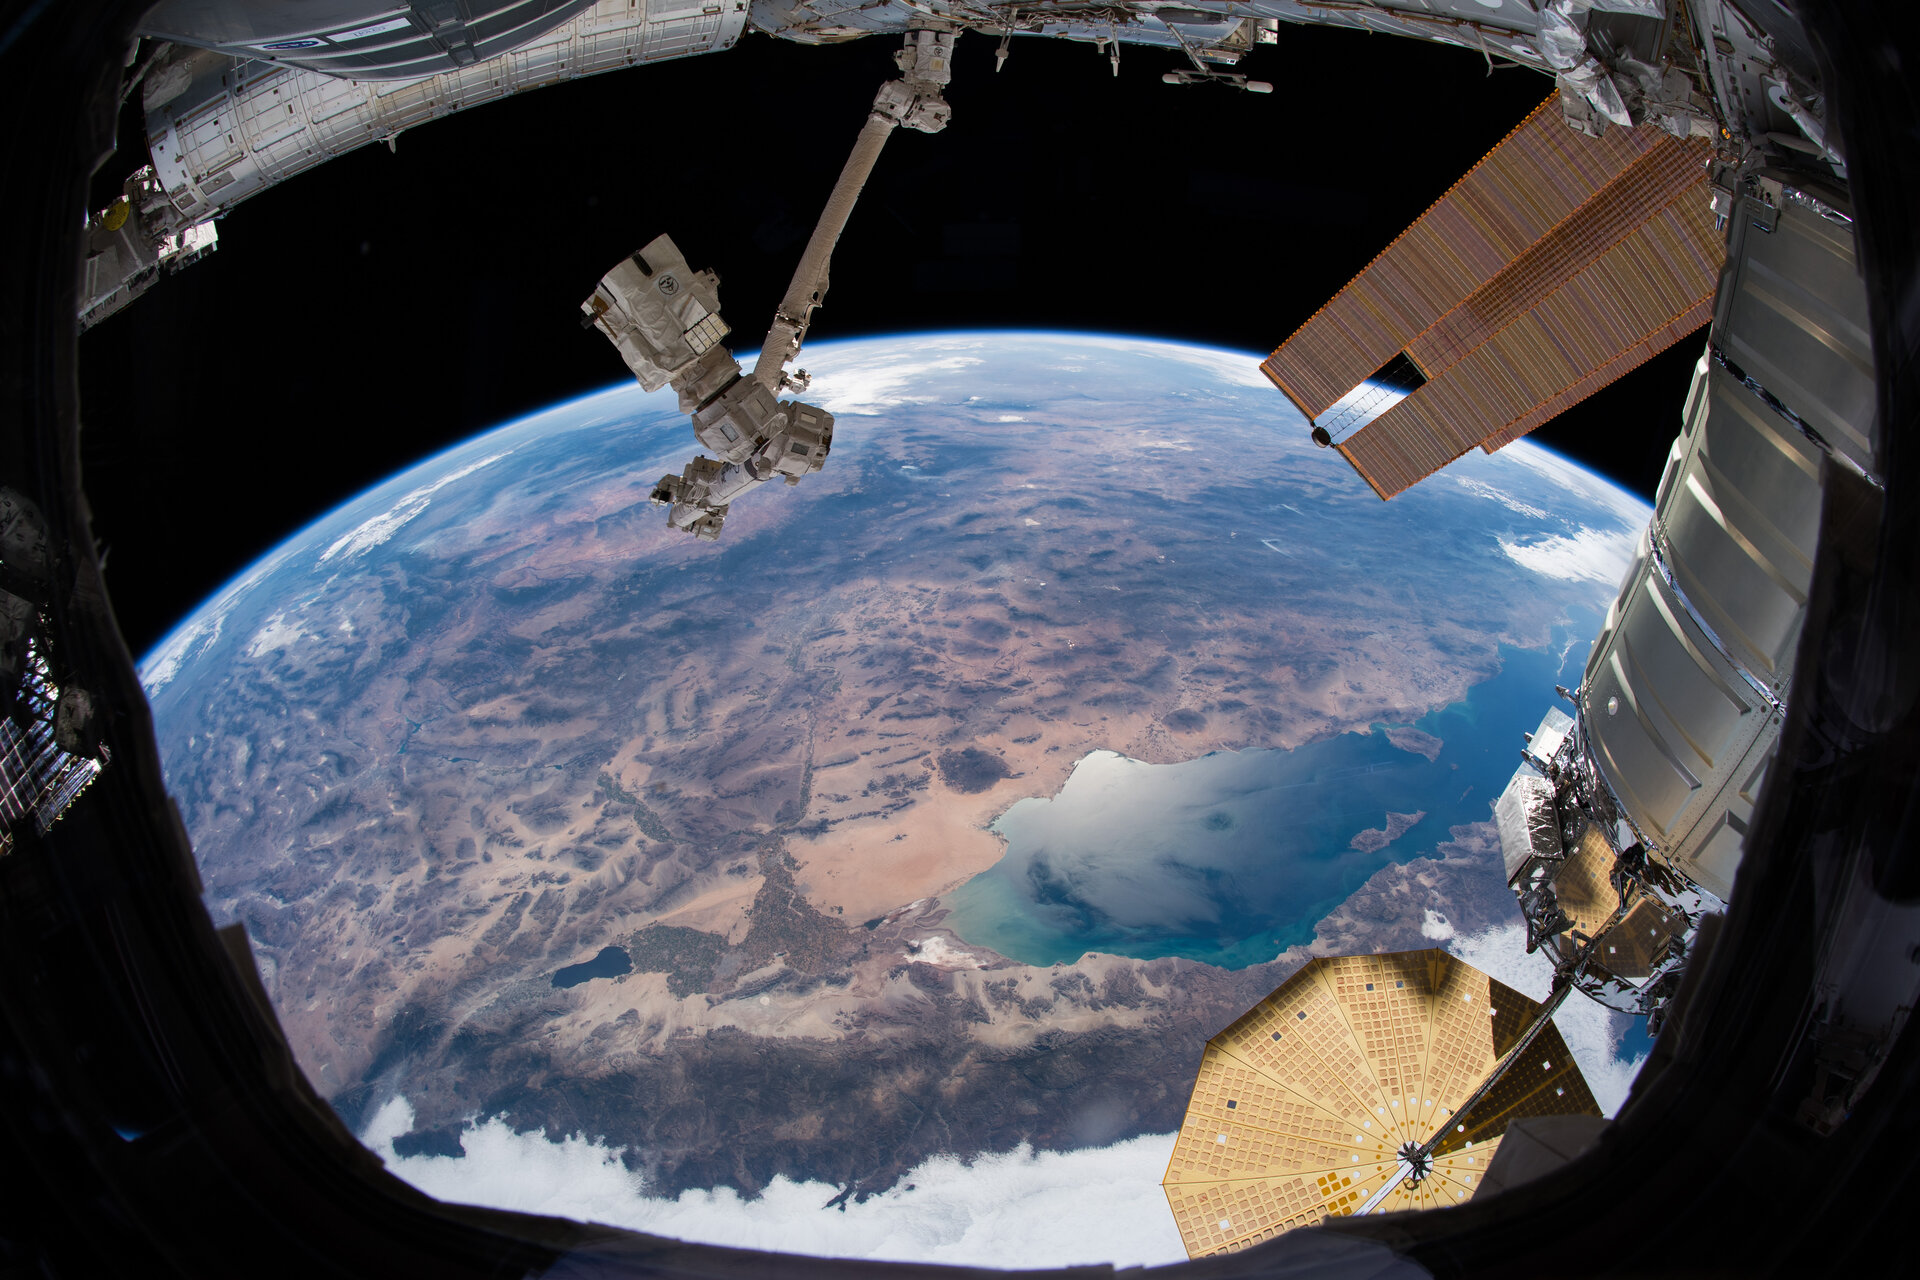 View of California from the cupola of the the International Space Station